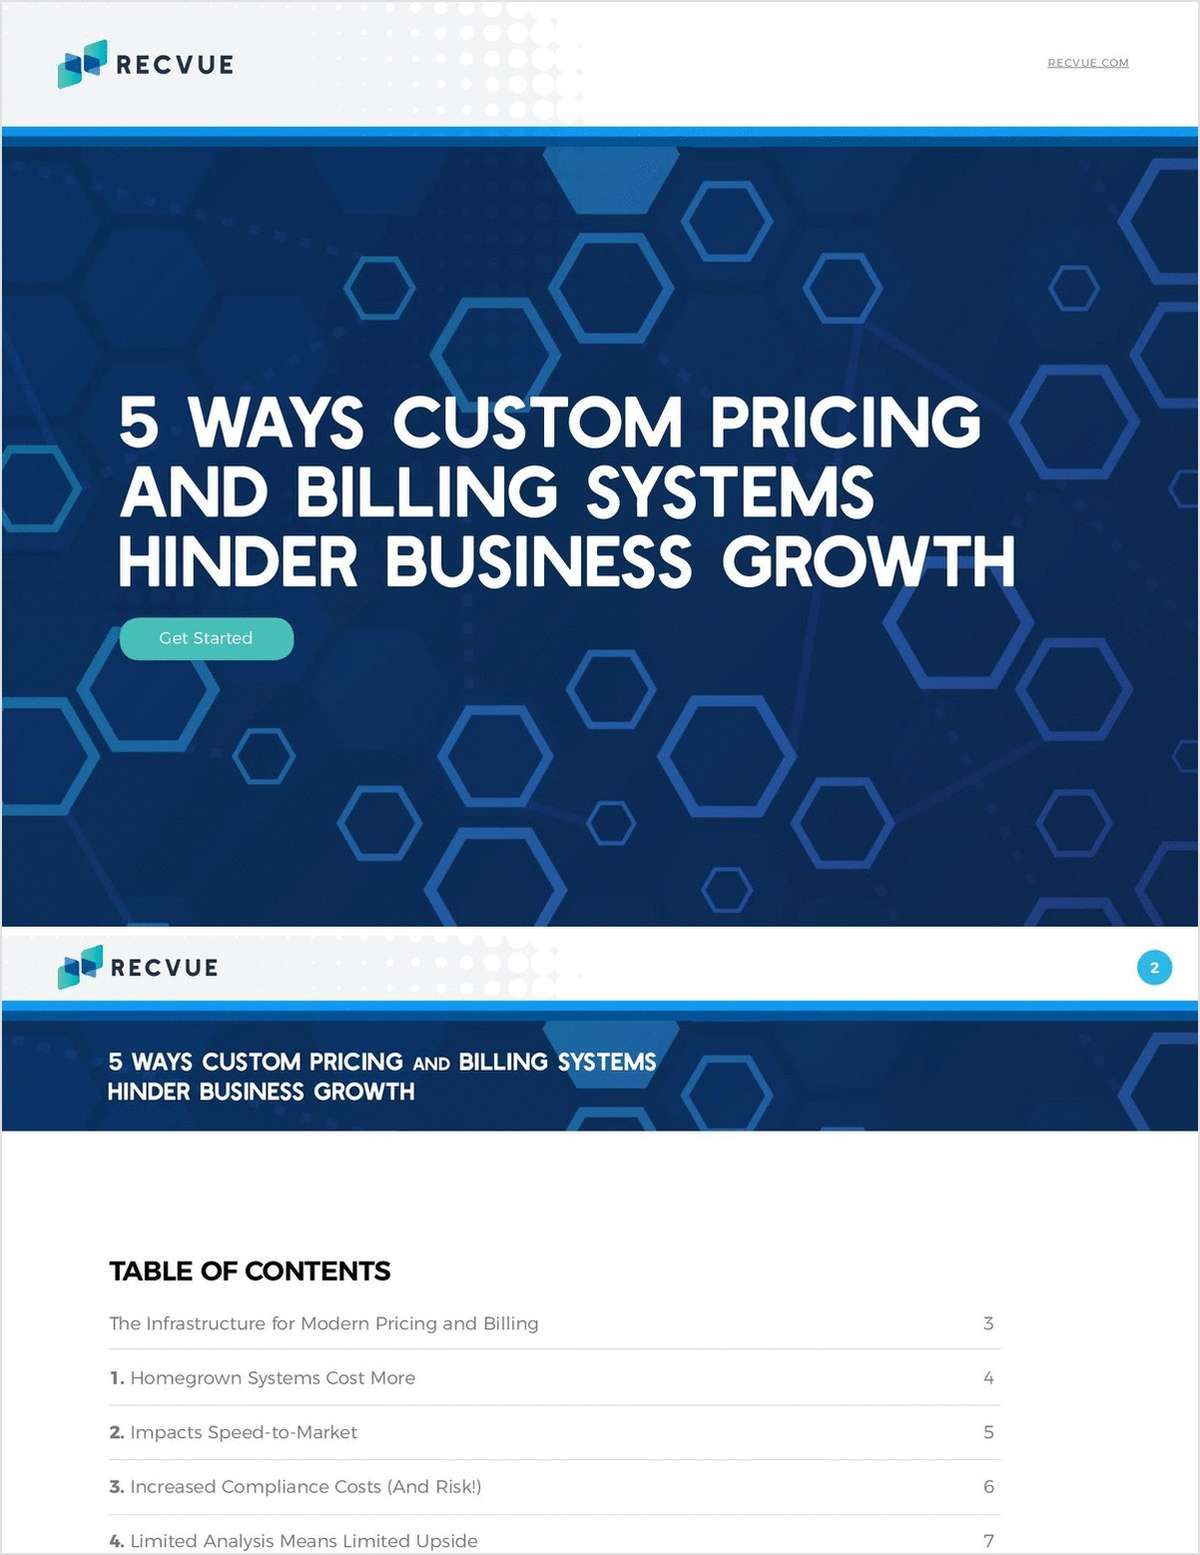 5 Ways Custom Pricing and Billing Systems Hinder Business Growth